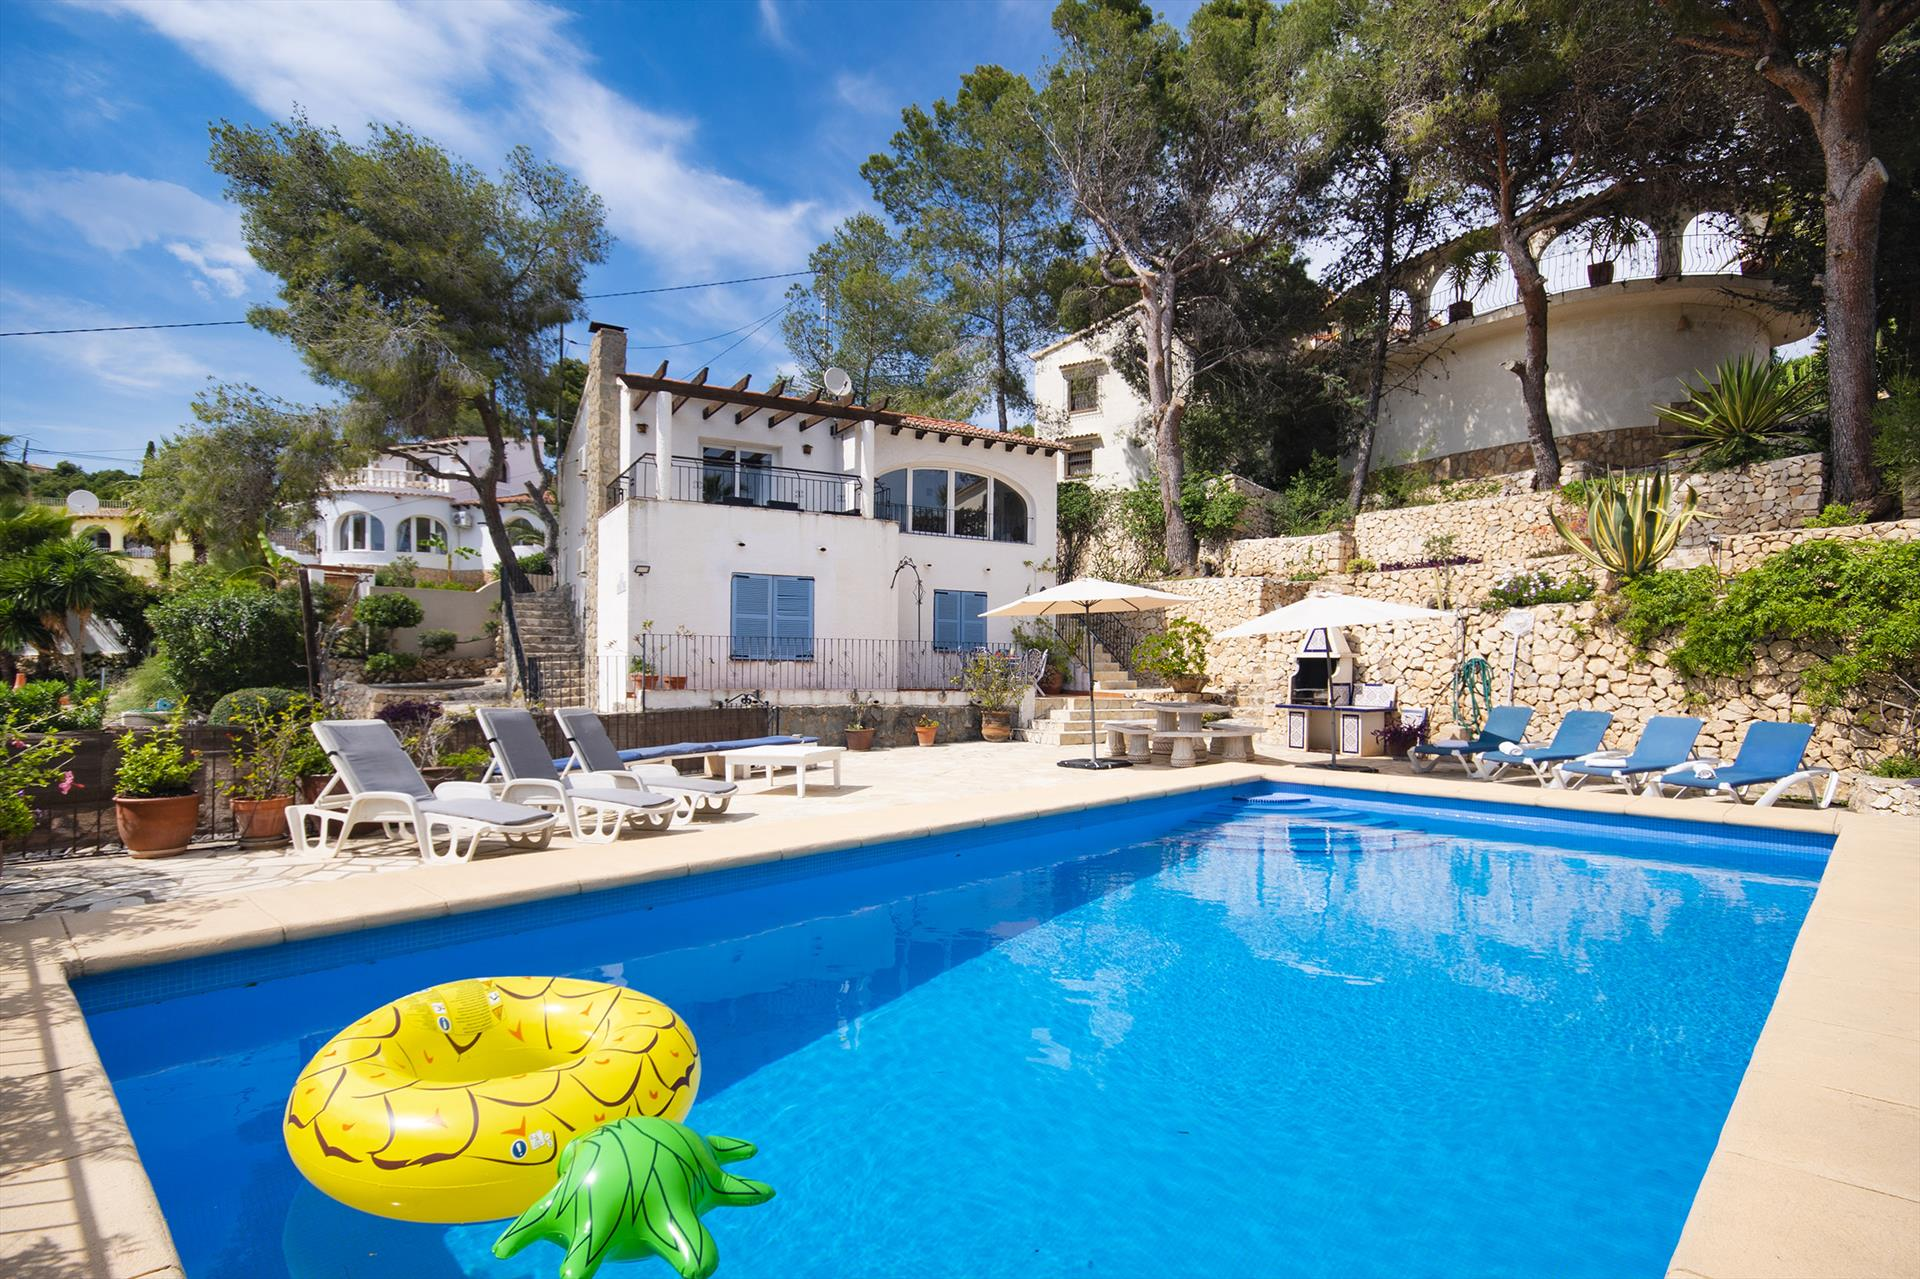 Georgianna 8p, Classic and comfortable villa in Benissa, on the Costa Blanca, Spain  with private pool for 8 persons.....